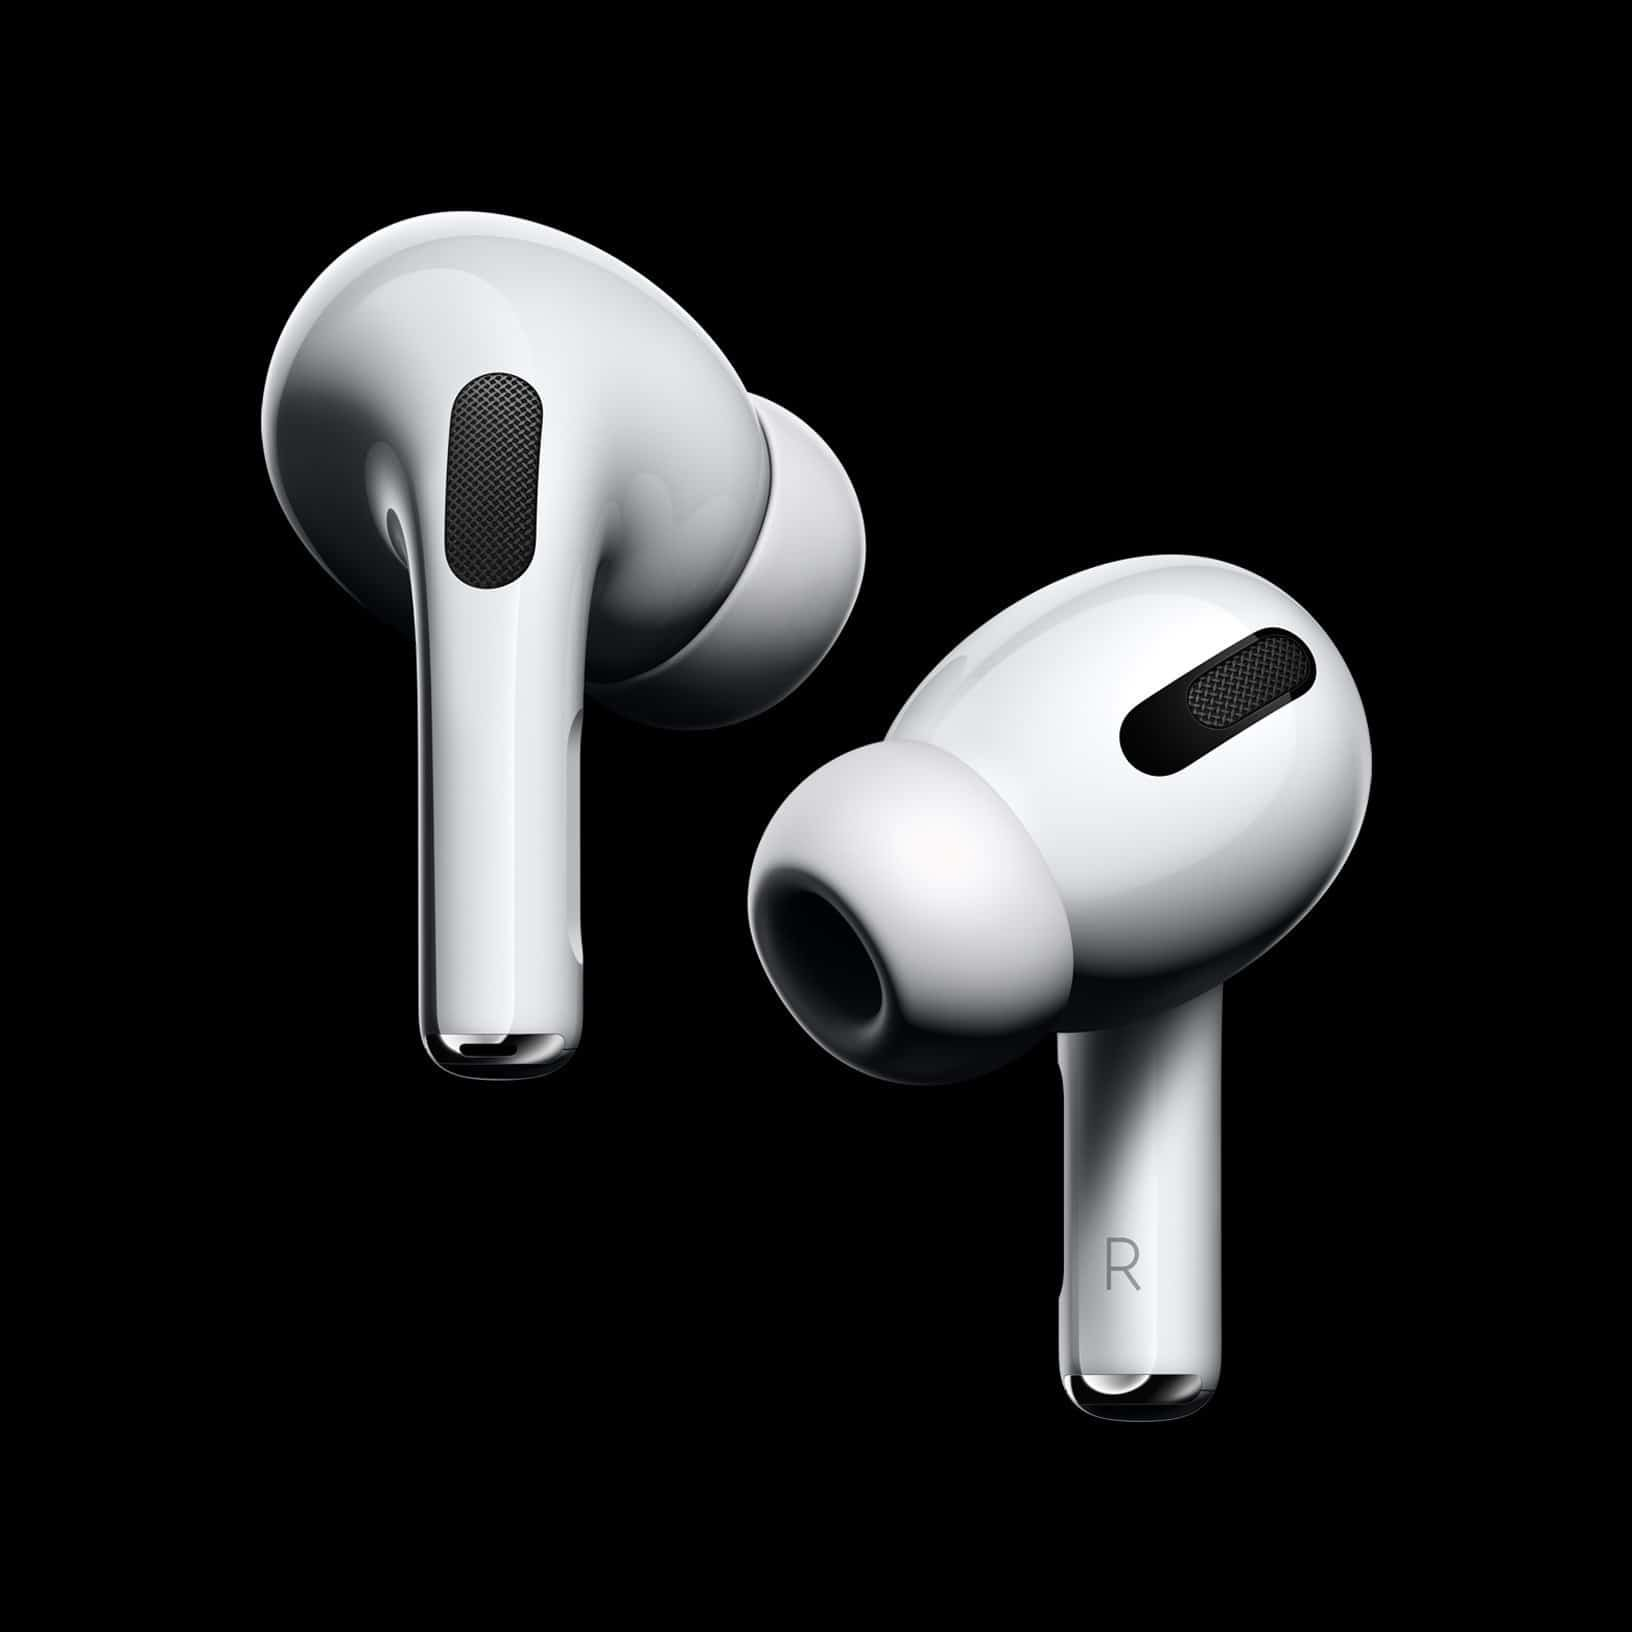 AirPods Pro - Apple